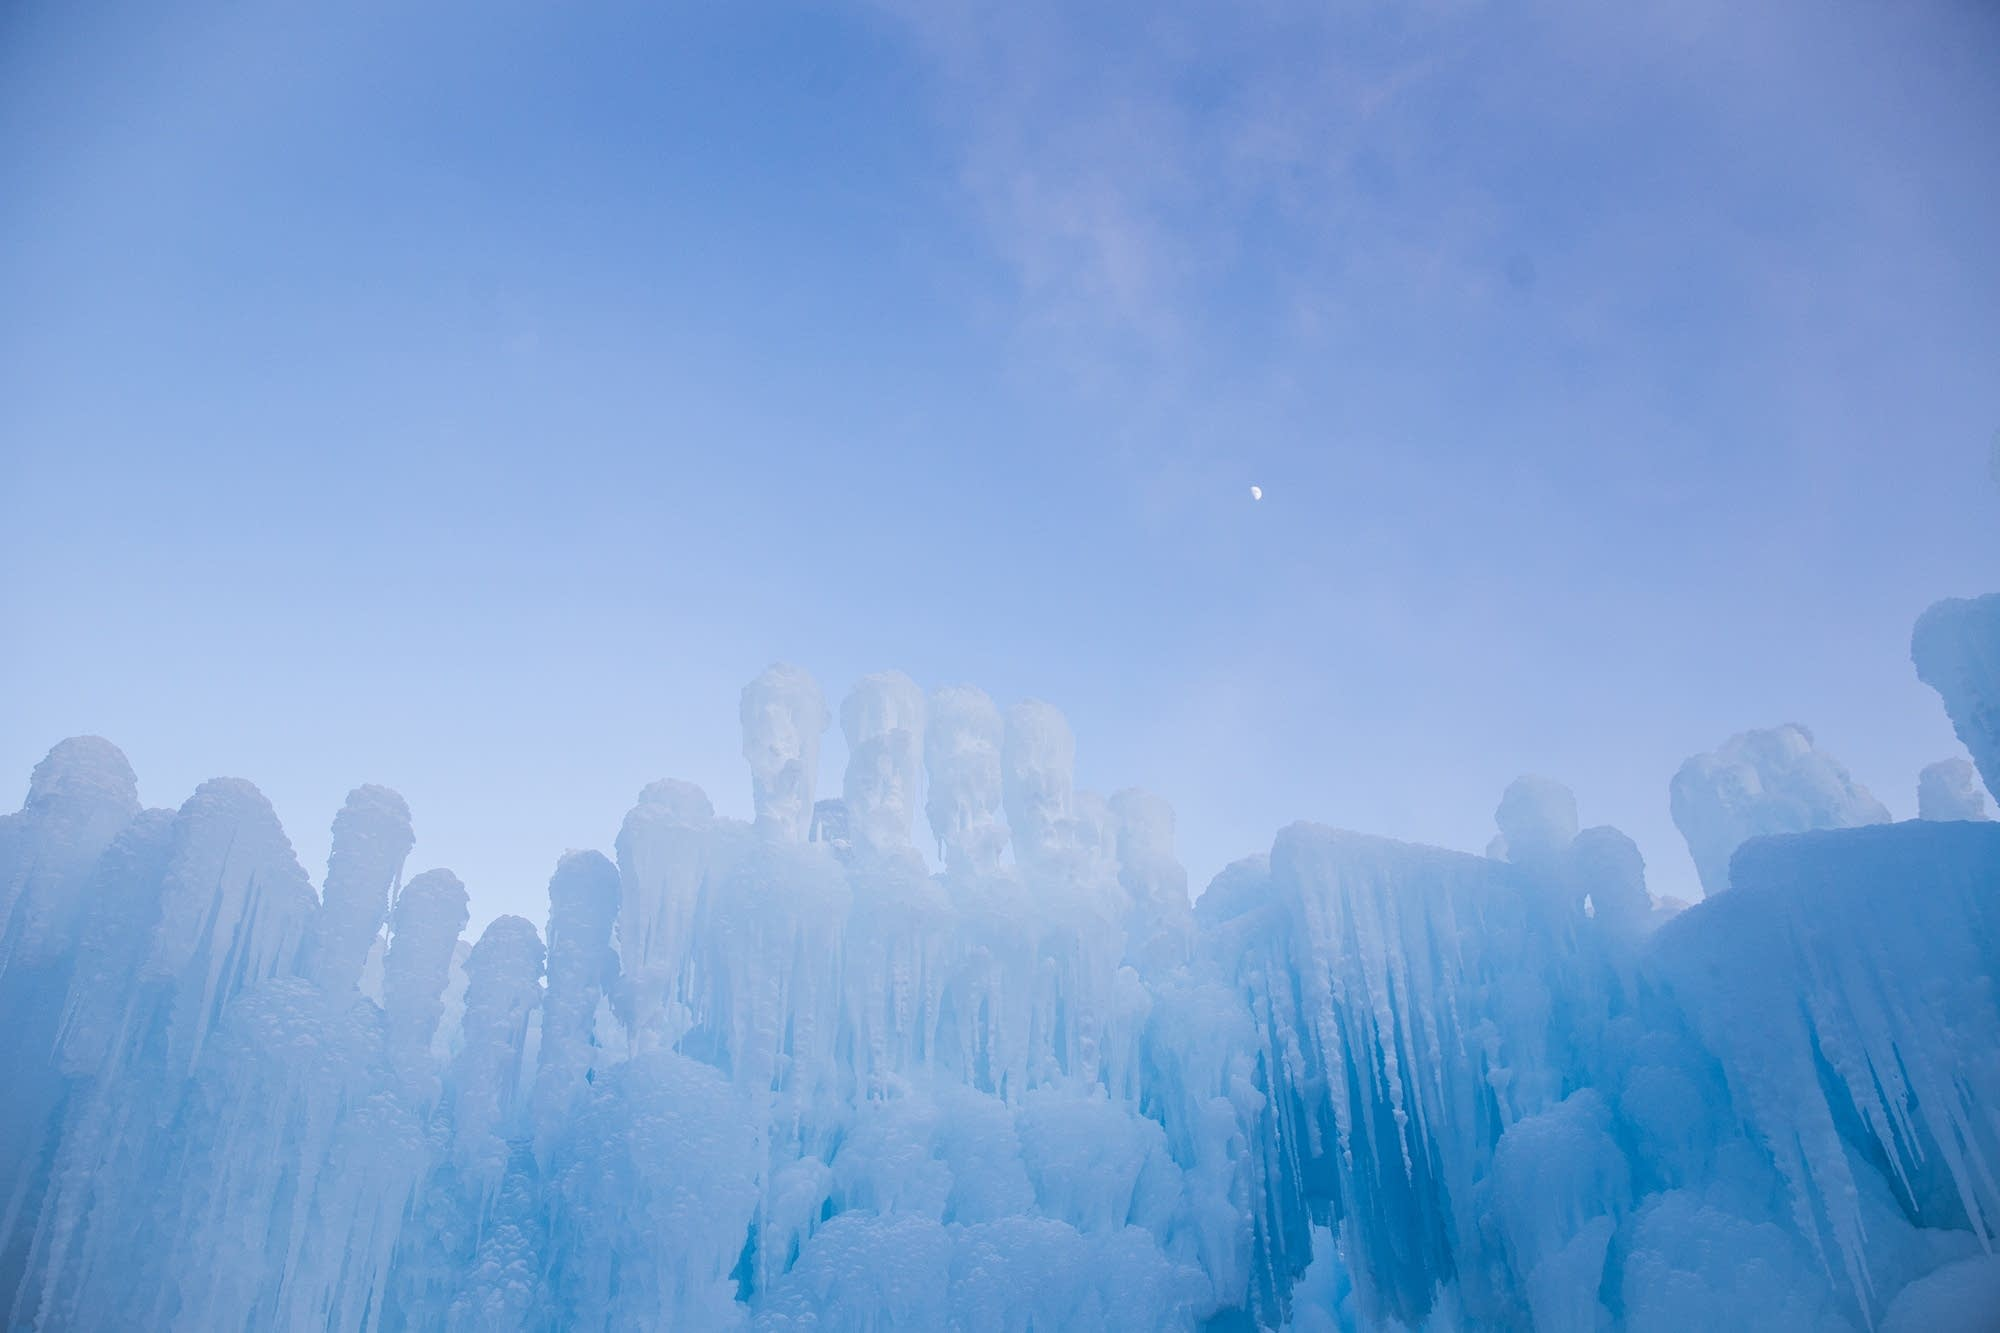 The moon rises above Ice Castle walls.